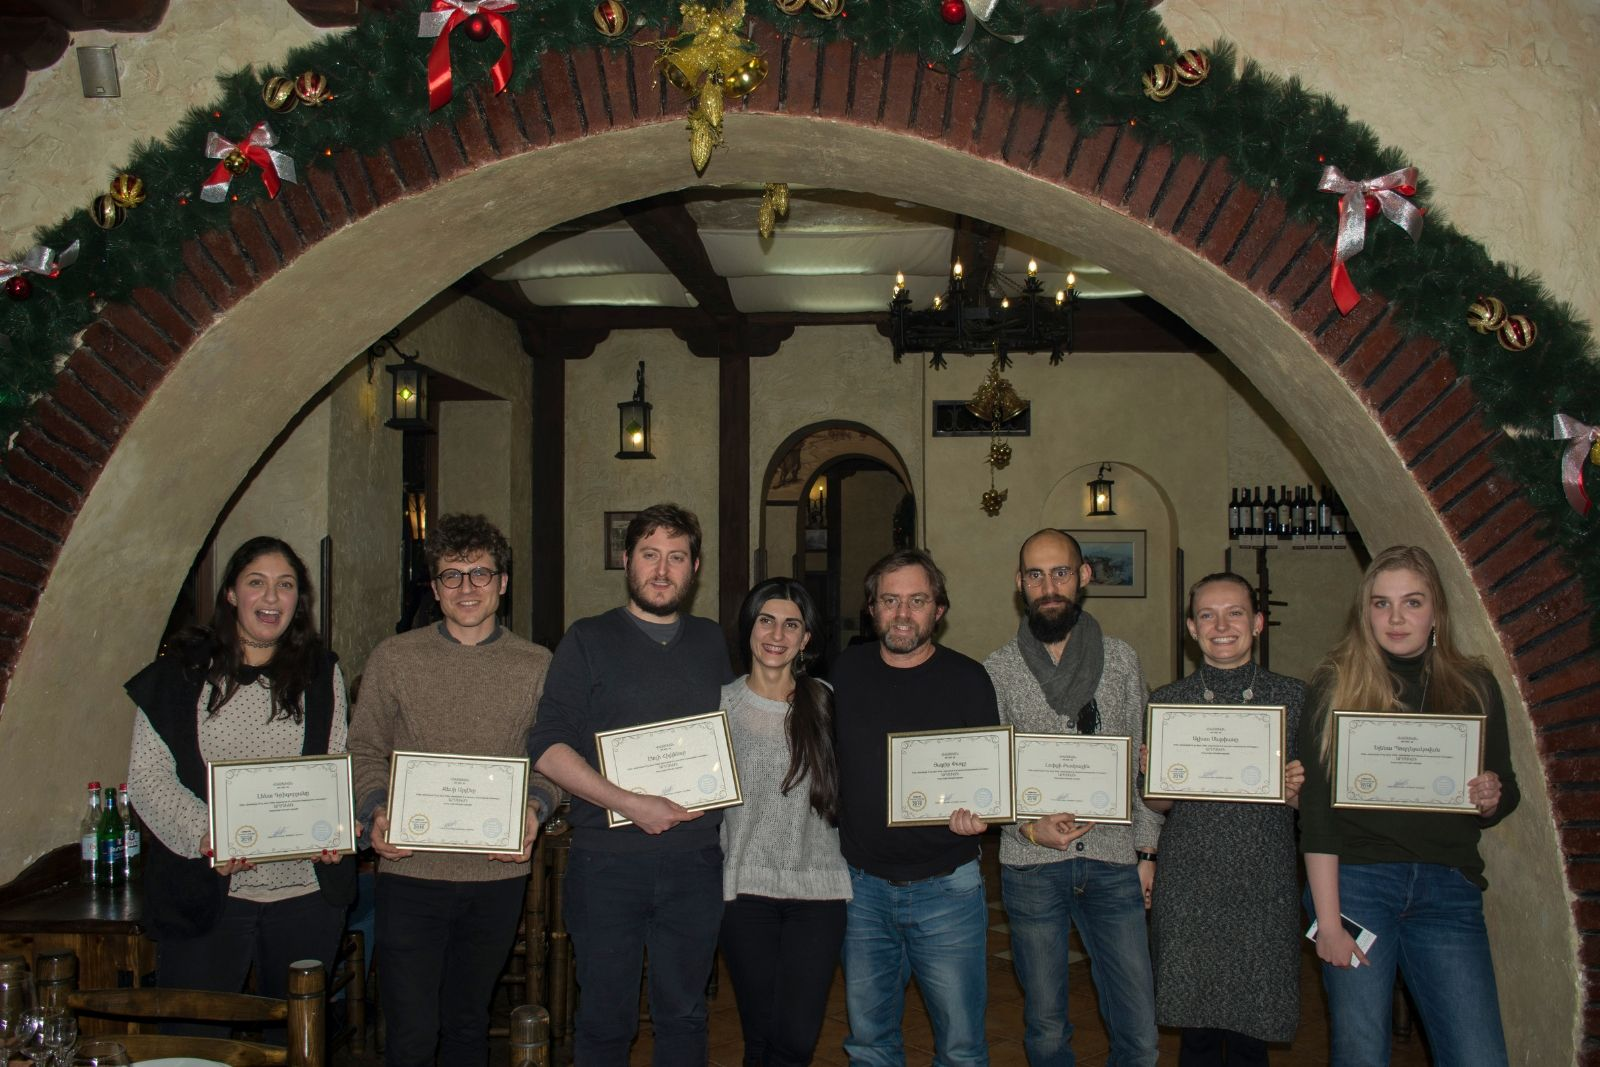 Participants of Armenian language winter school 2016 received their certificates after farewell dinner. From left to right: Lena Krikorian, Jesse Siragan Arlen, Andy Hilkens, Sona Mnatsakanyan (instructor of Armenian language), Yakir Paz, Luigi Bambaci, Alyssa Maria Mathias, Elena Pozdnyakova